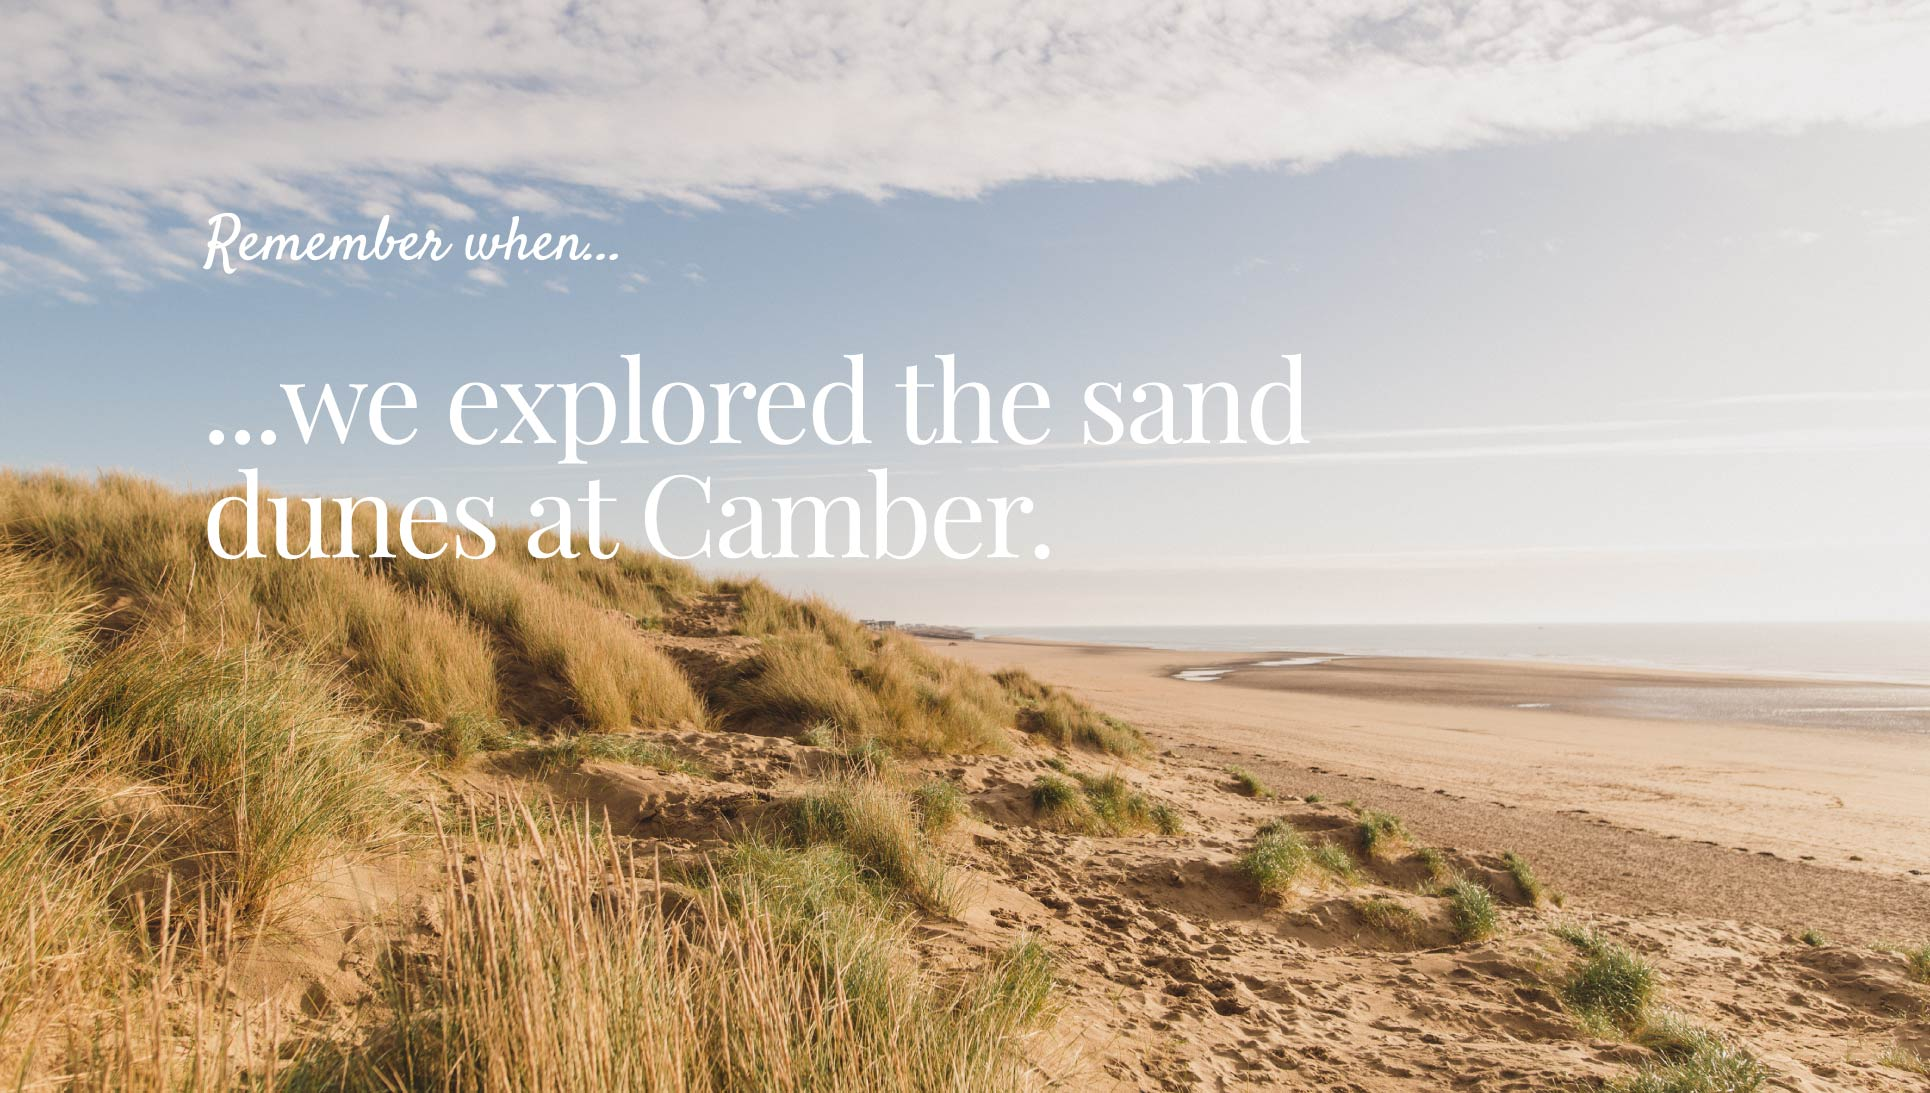 Remember when we explored the sand dunes at Camber sands brand graphic.